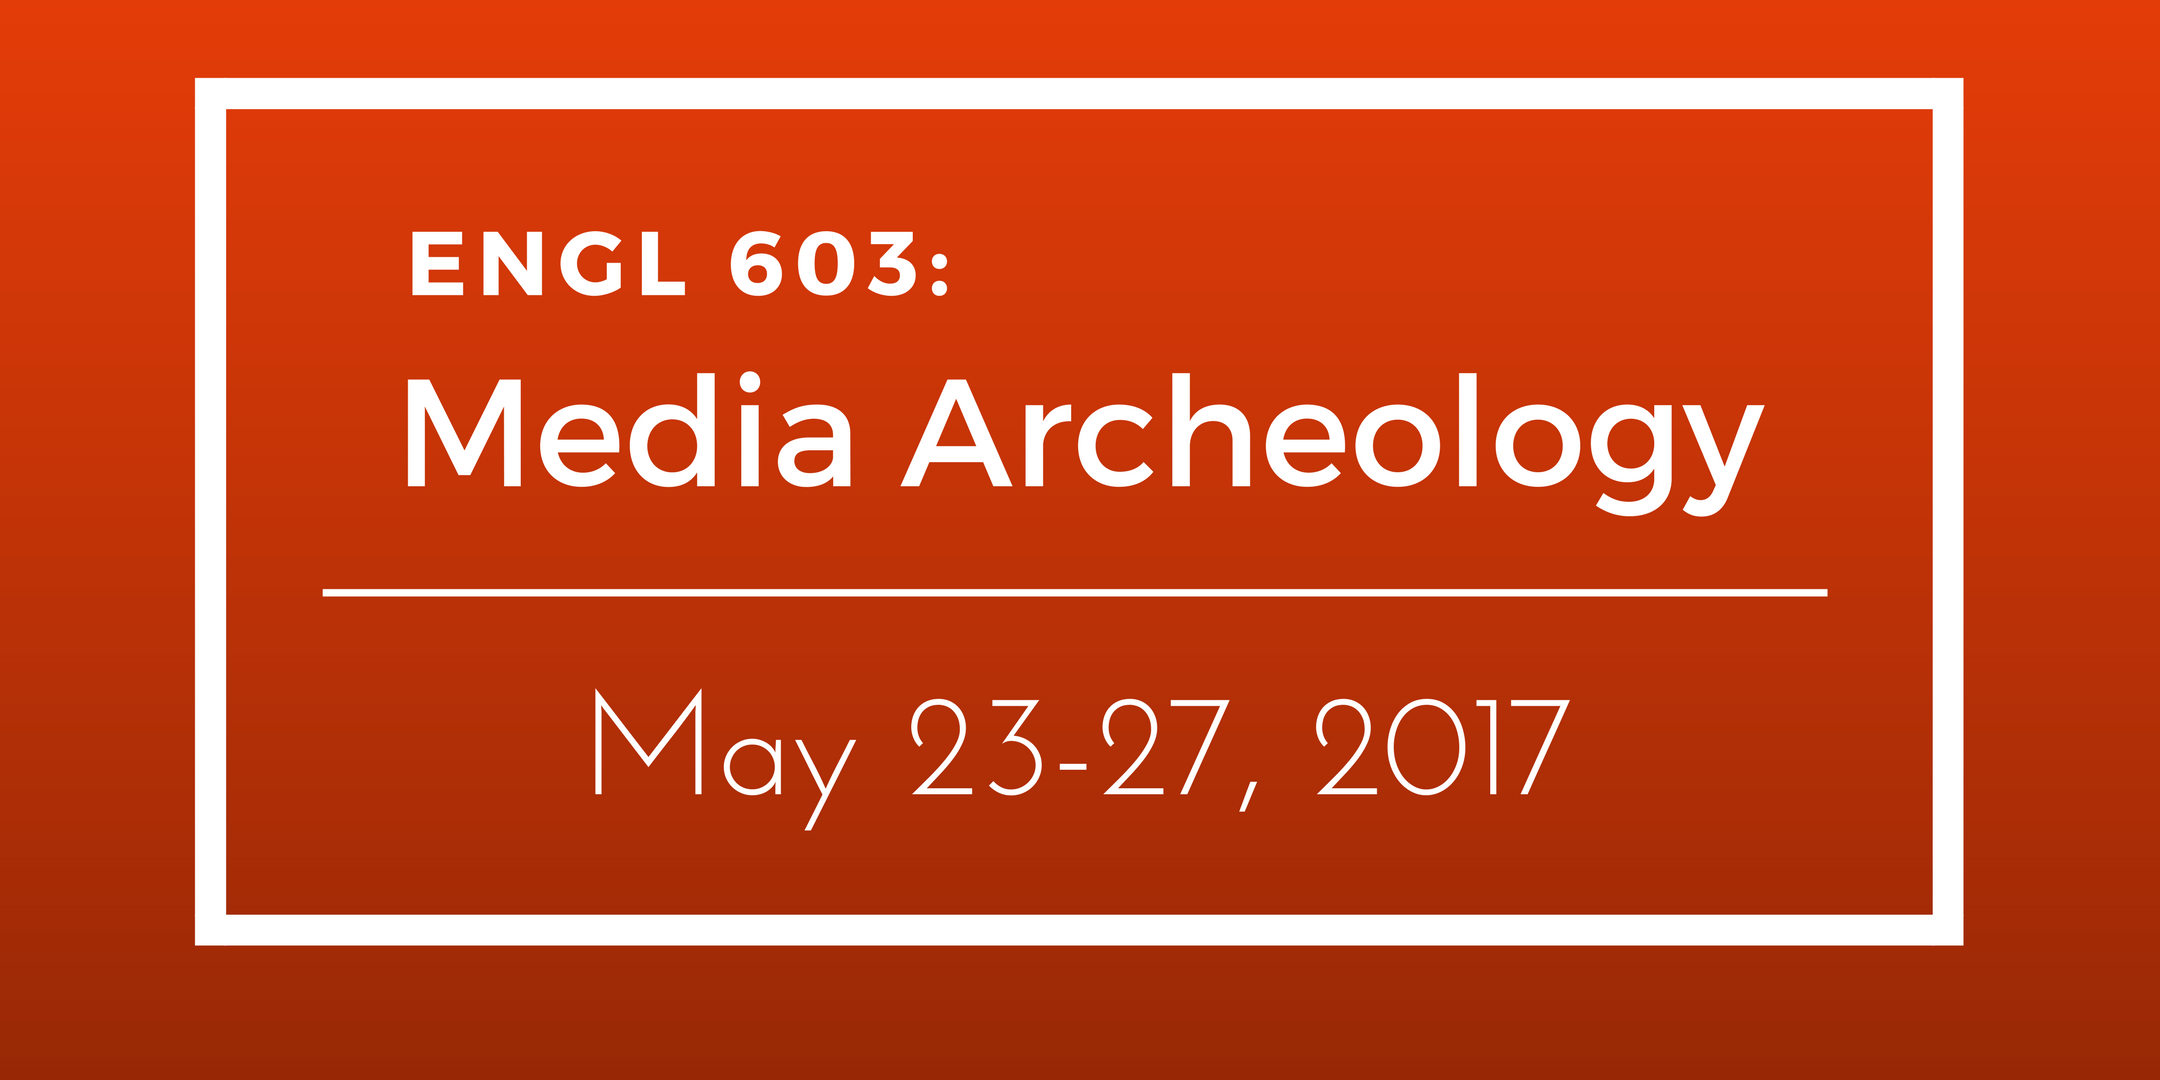 milieux-events-mediahistory-ENGL 603